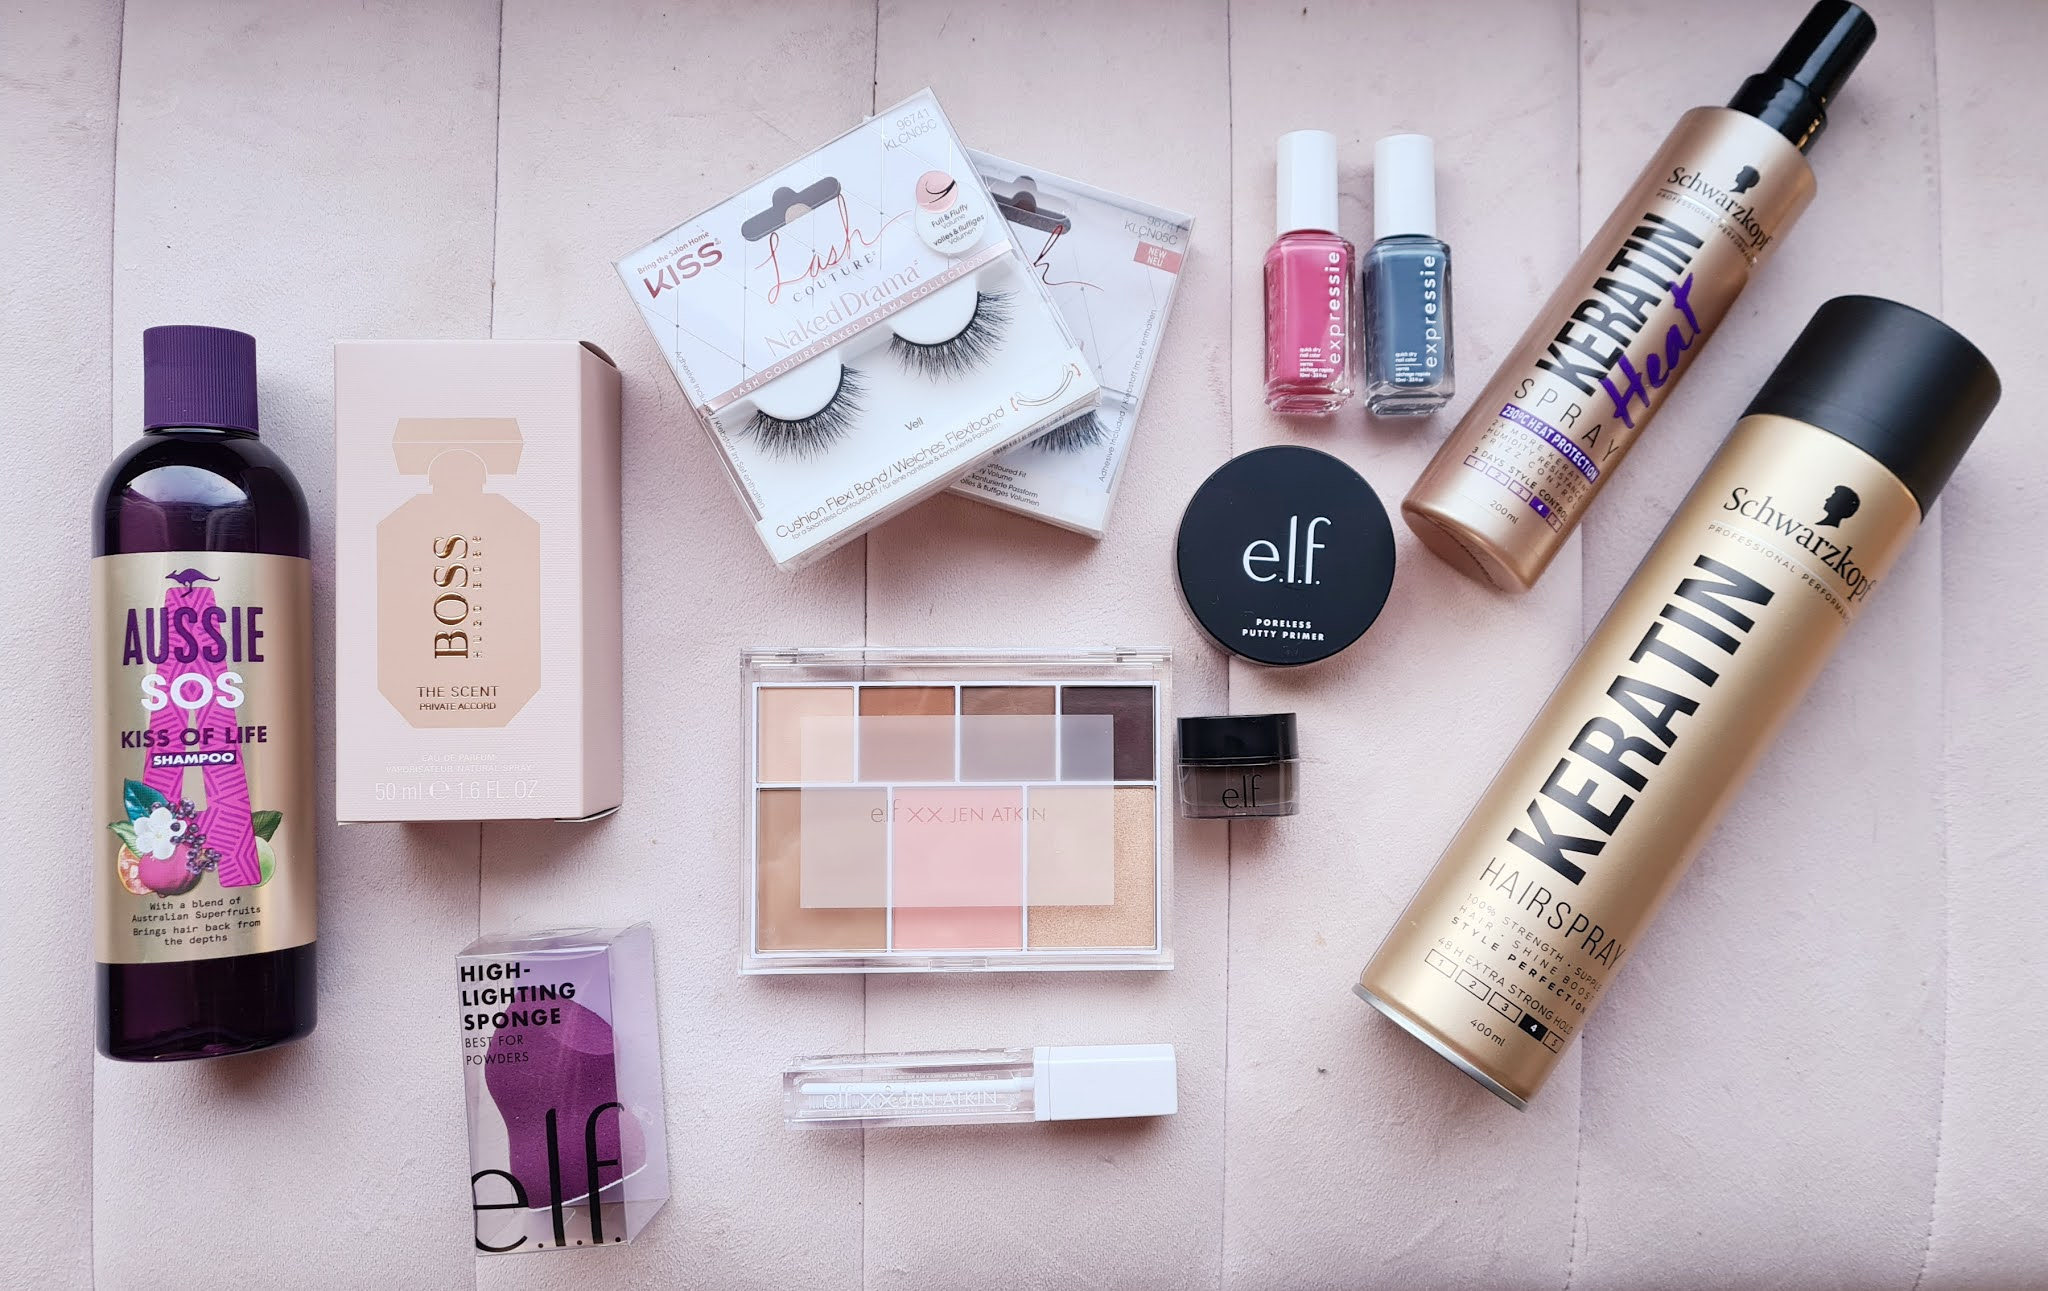 Affordable drugstore beauty haul boots superdrug e.l.f jen atkin aussie kiss salon lashes